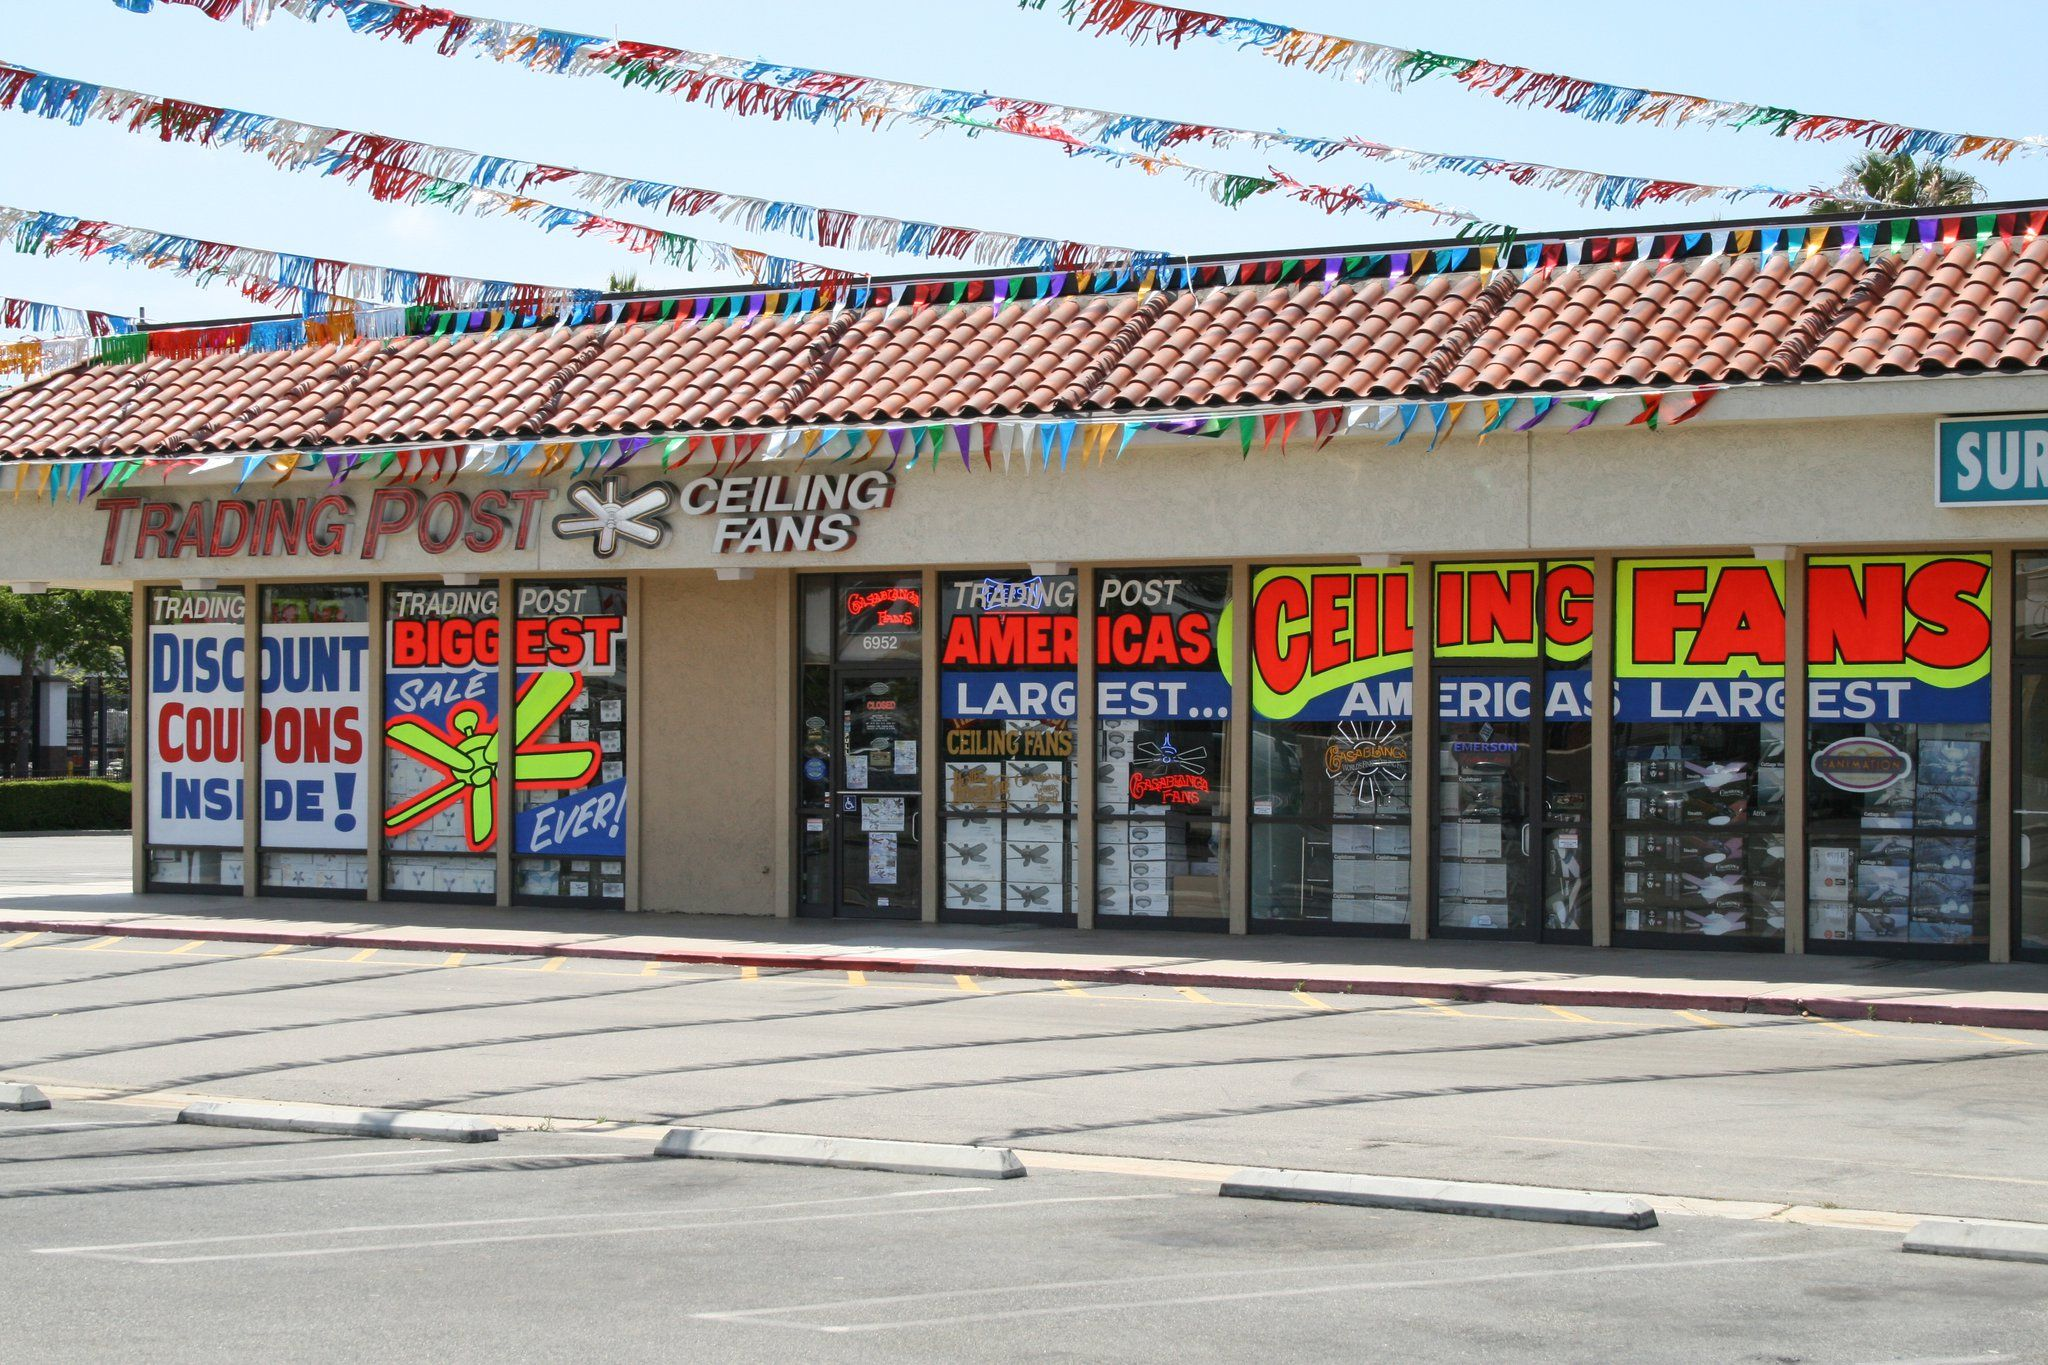 Trading Post Fan Company Lighting store in Huntington